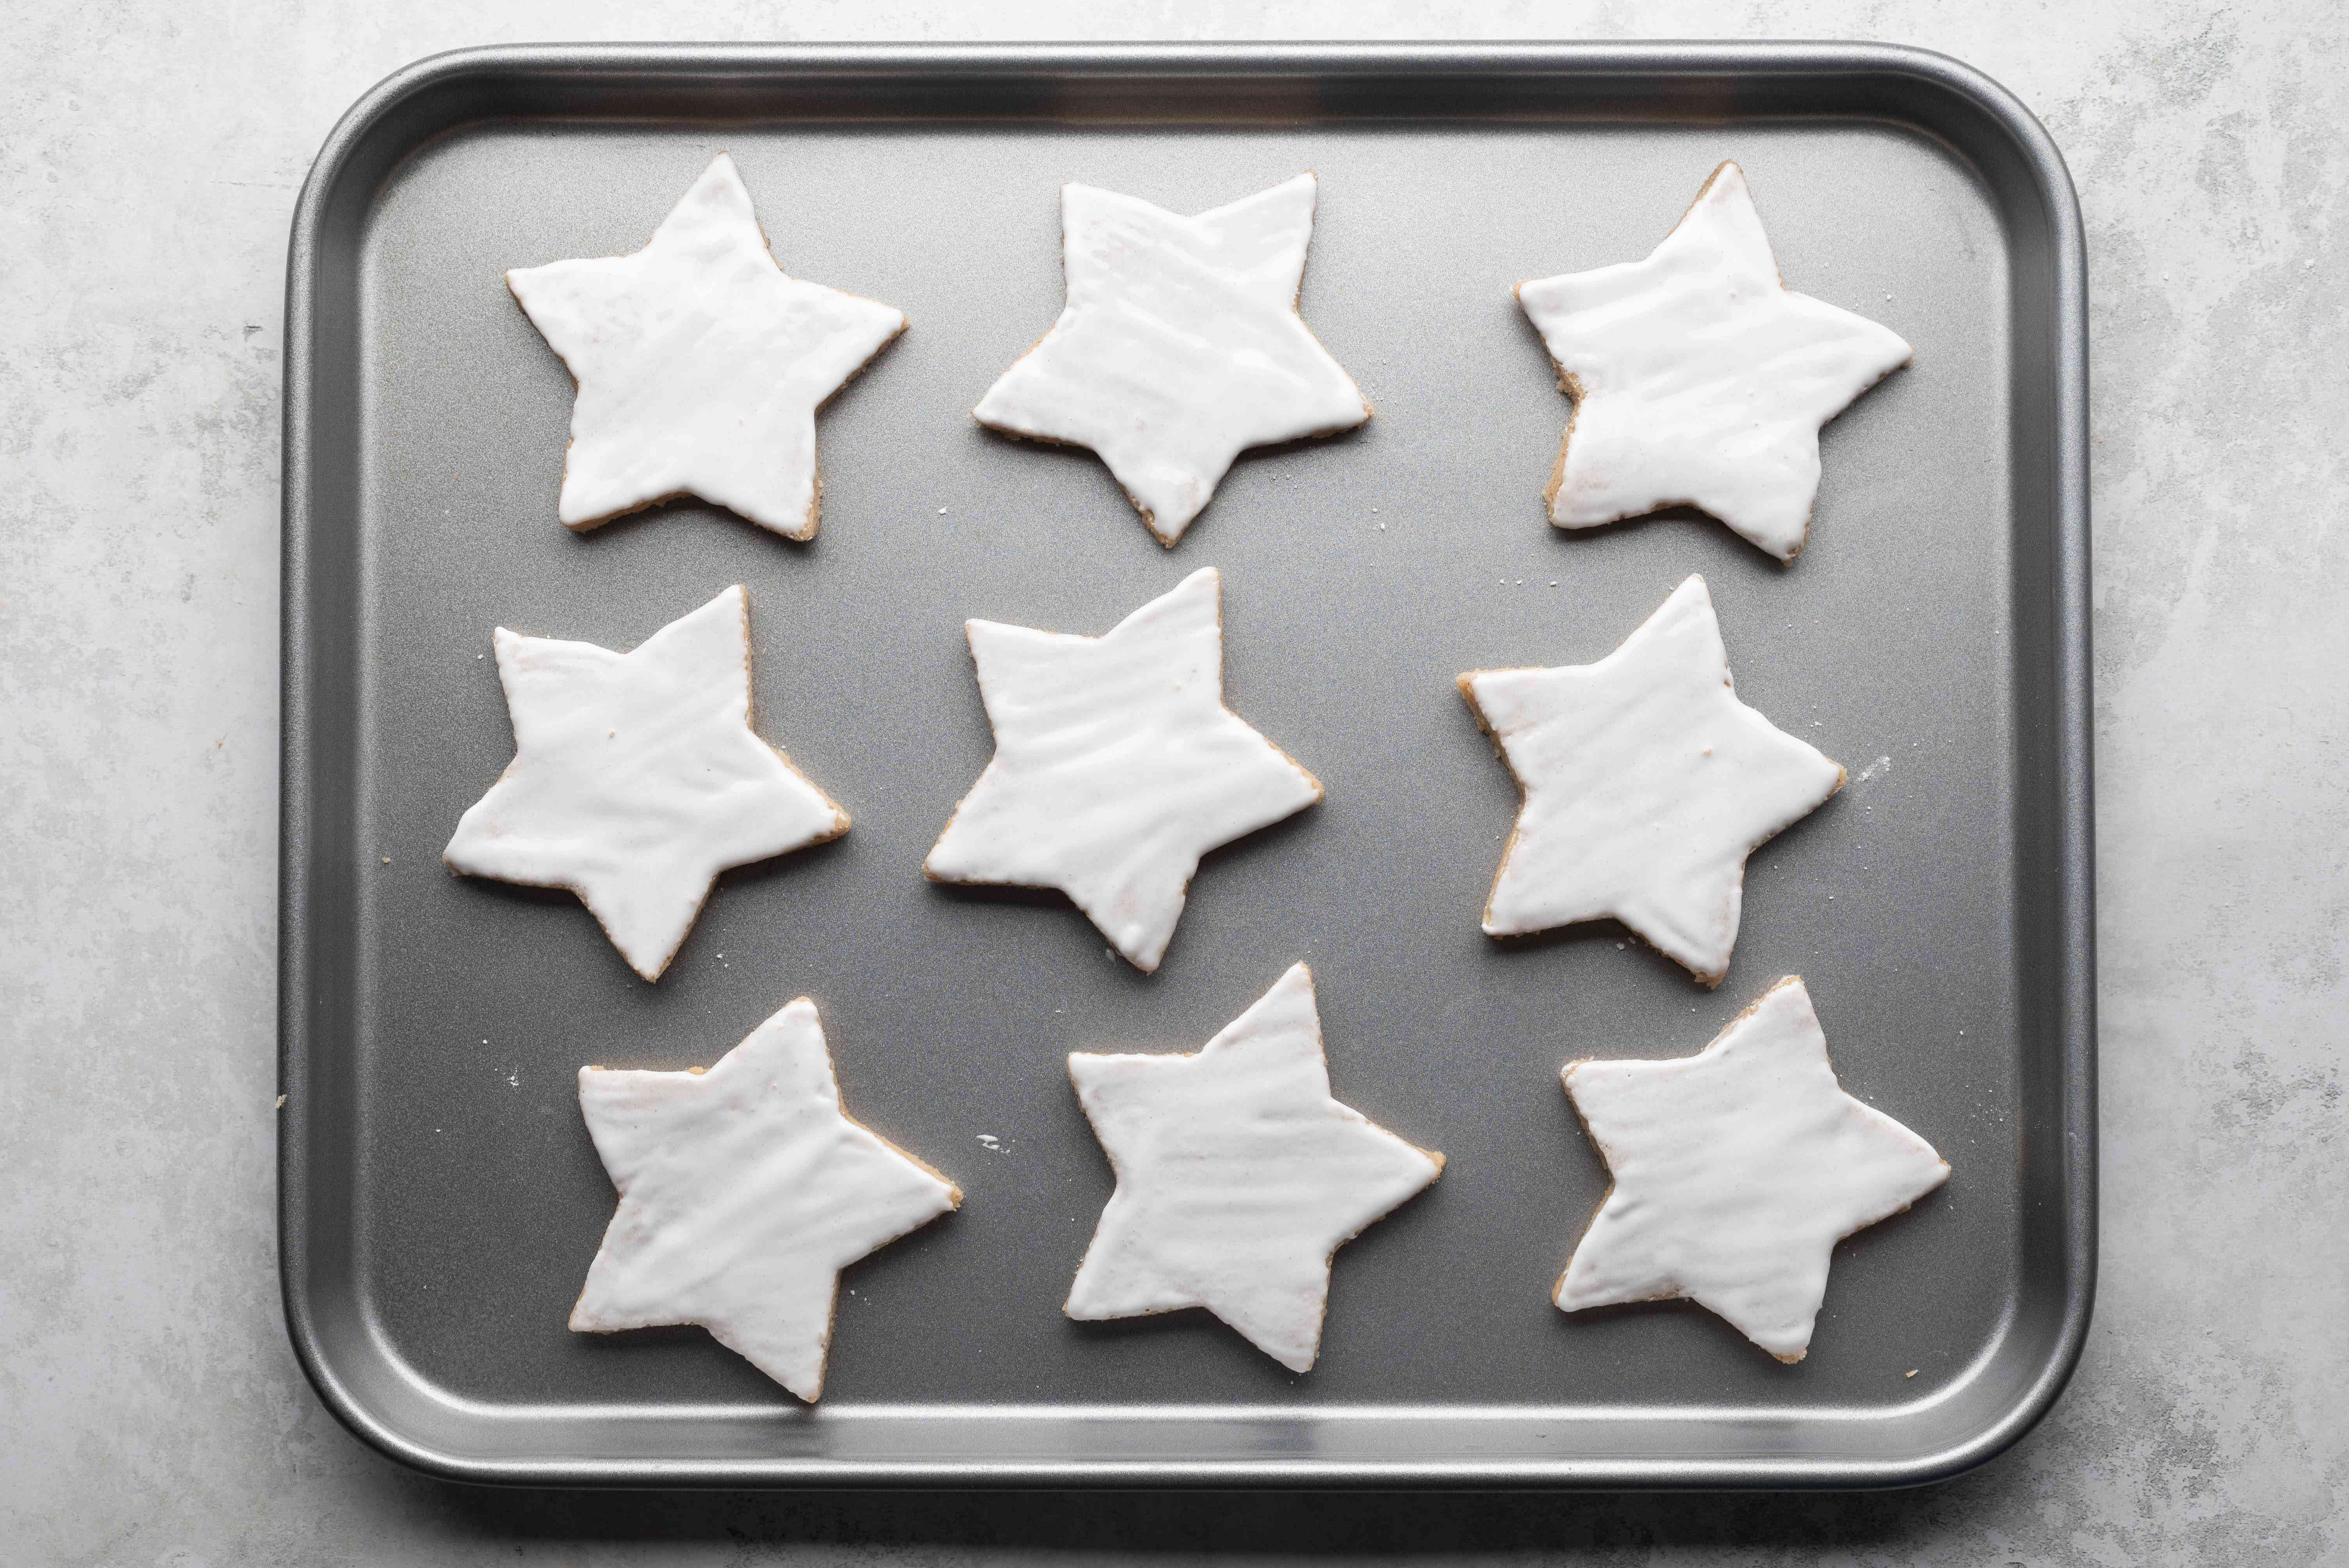 cookies brushed with icing on a baking sheet